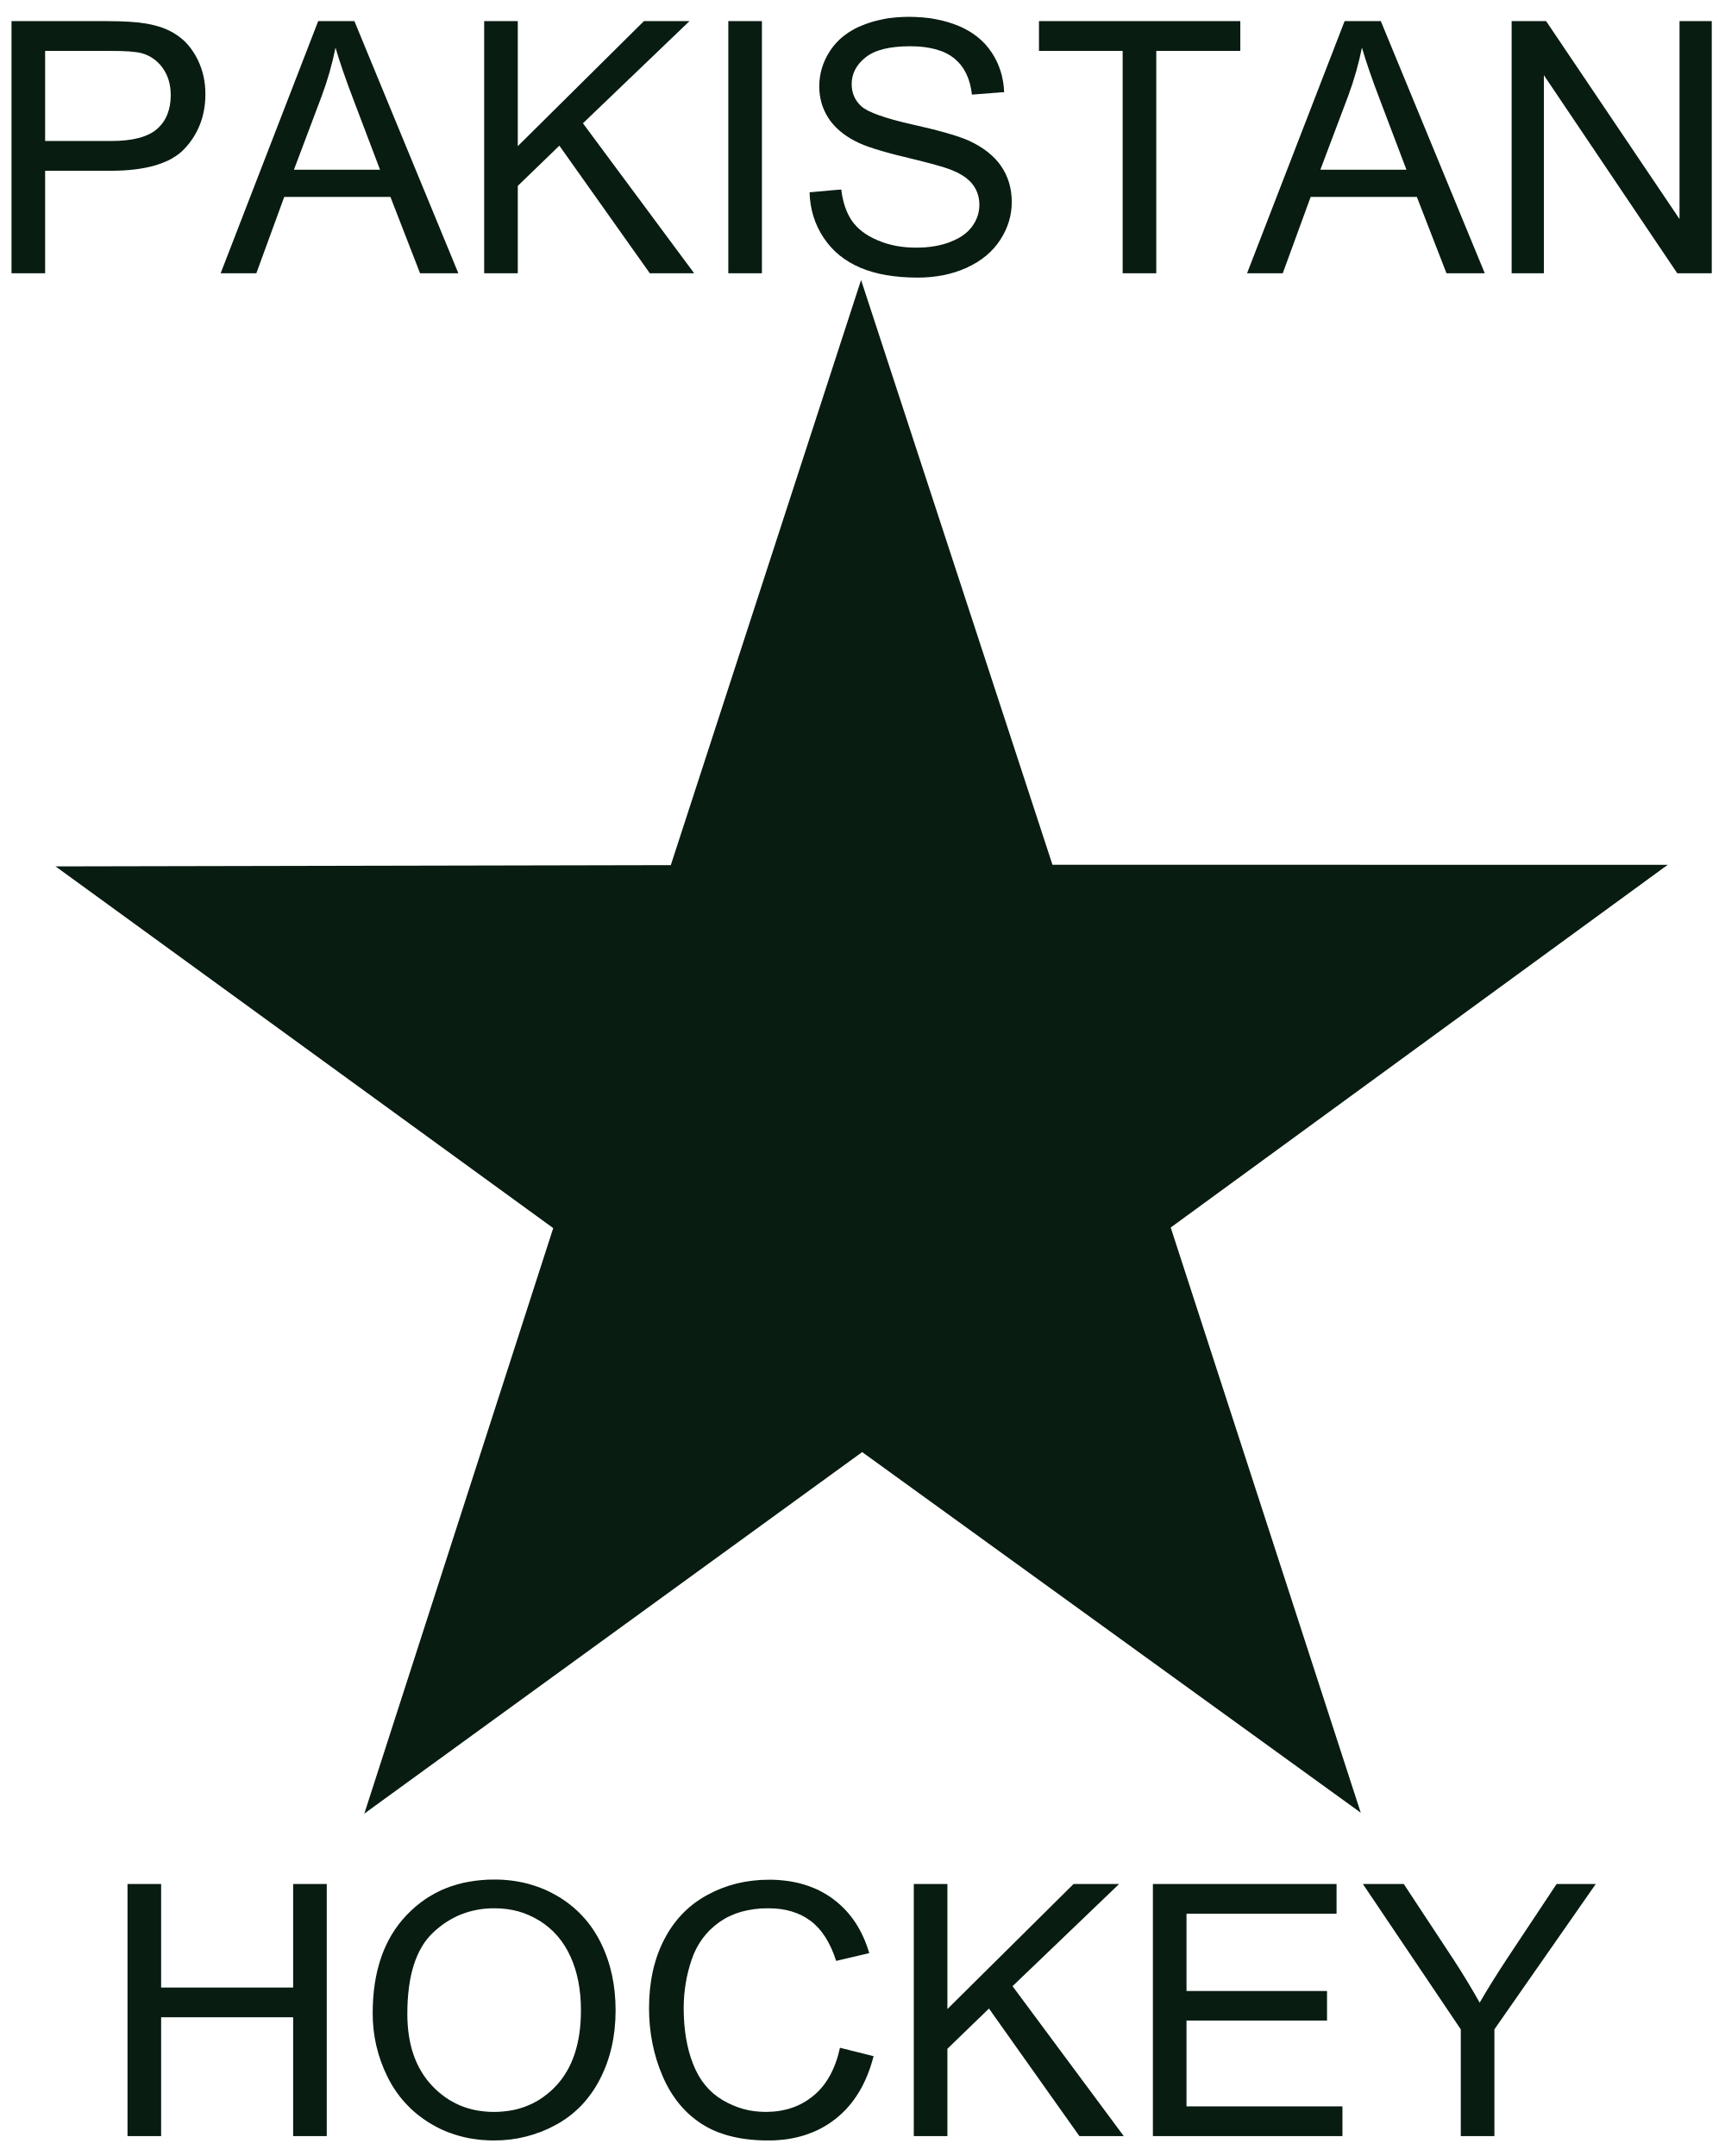 Pakistan men's national field hockey team - Wikipedia